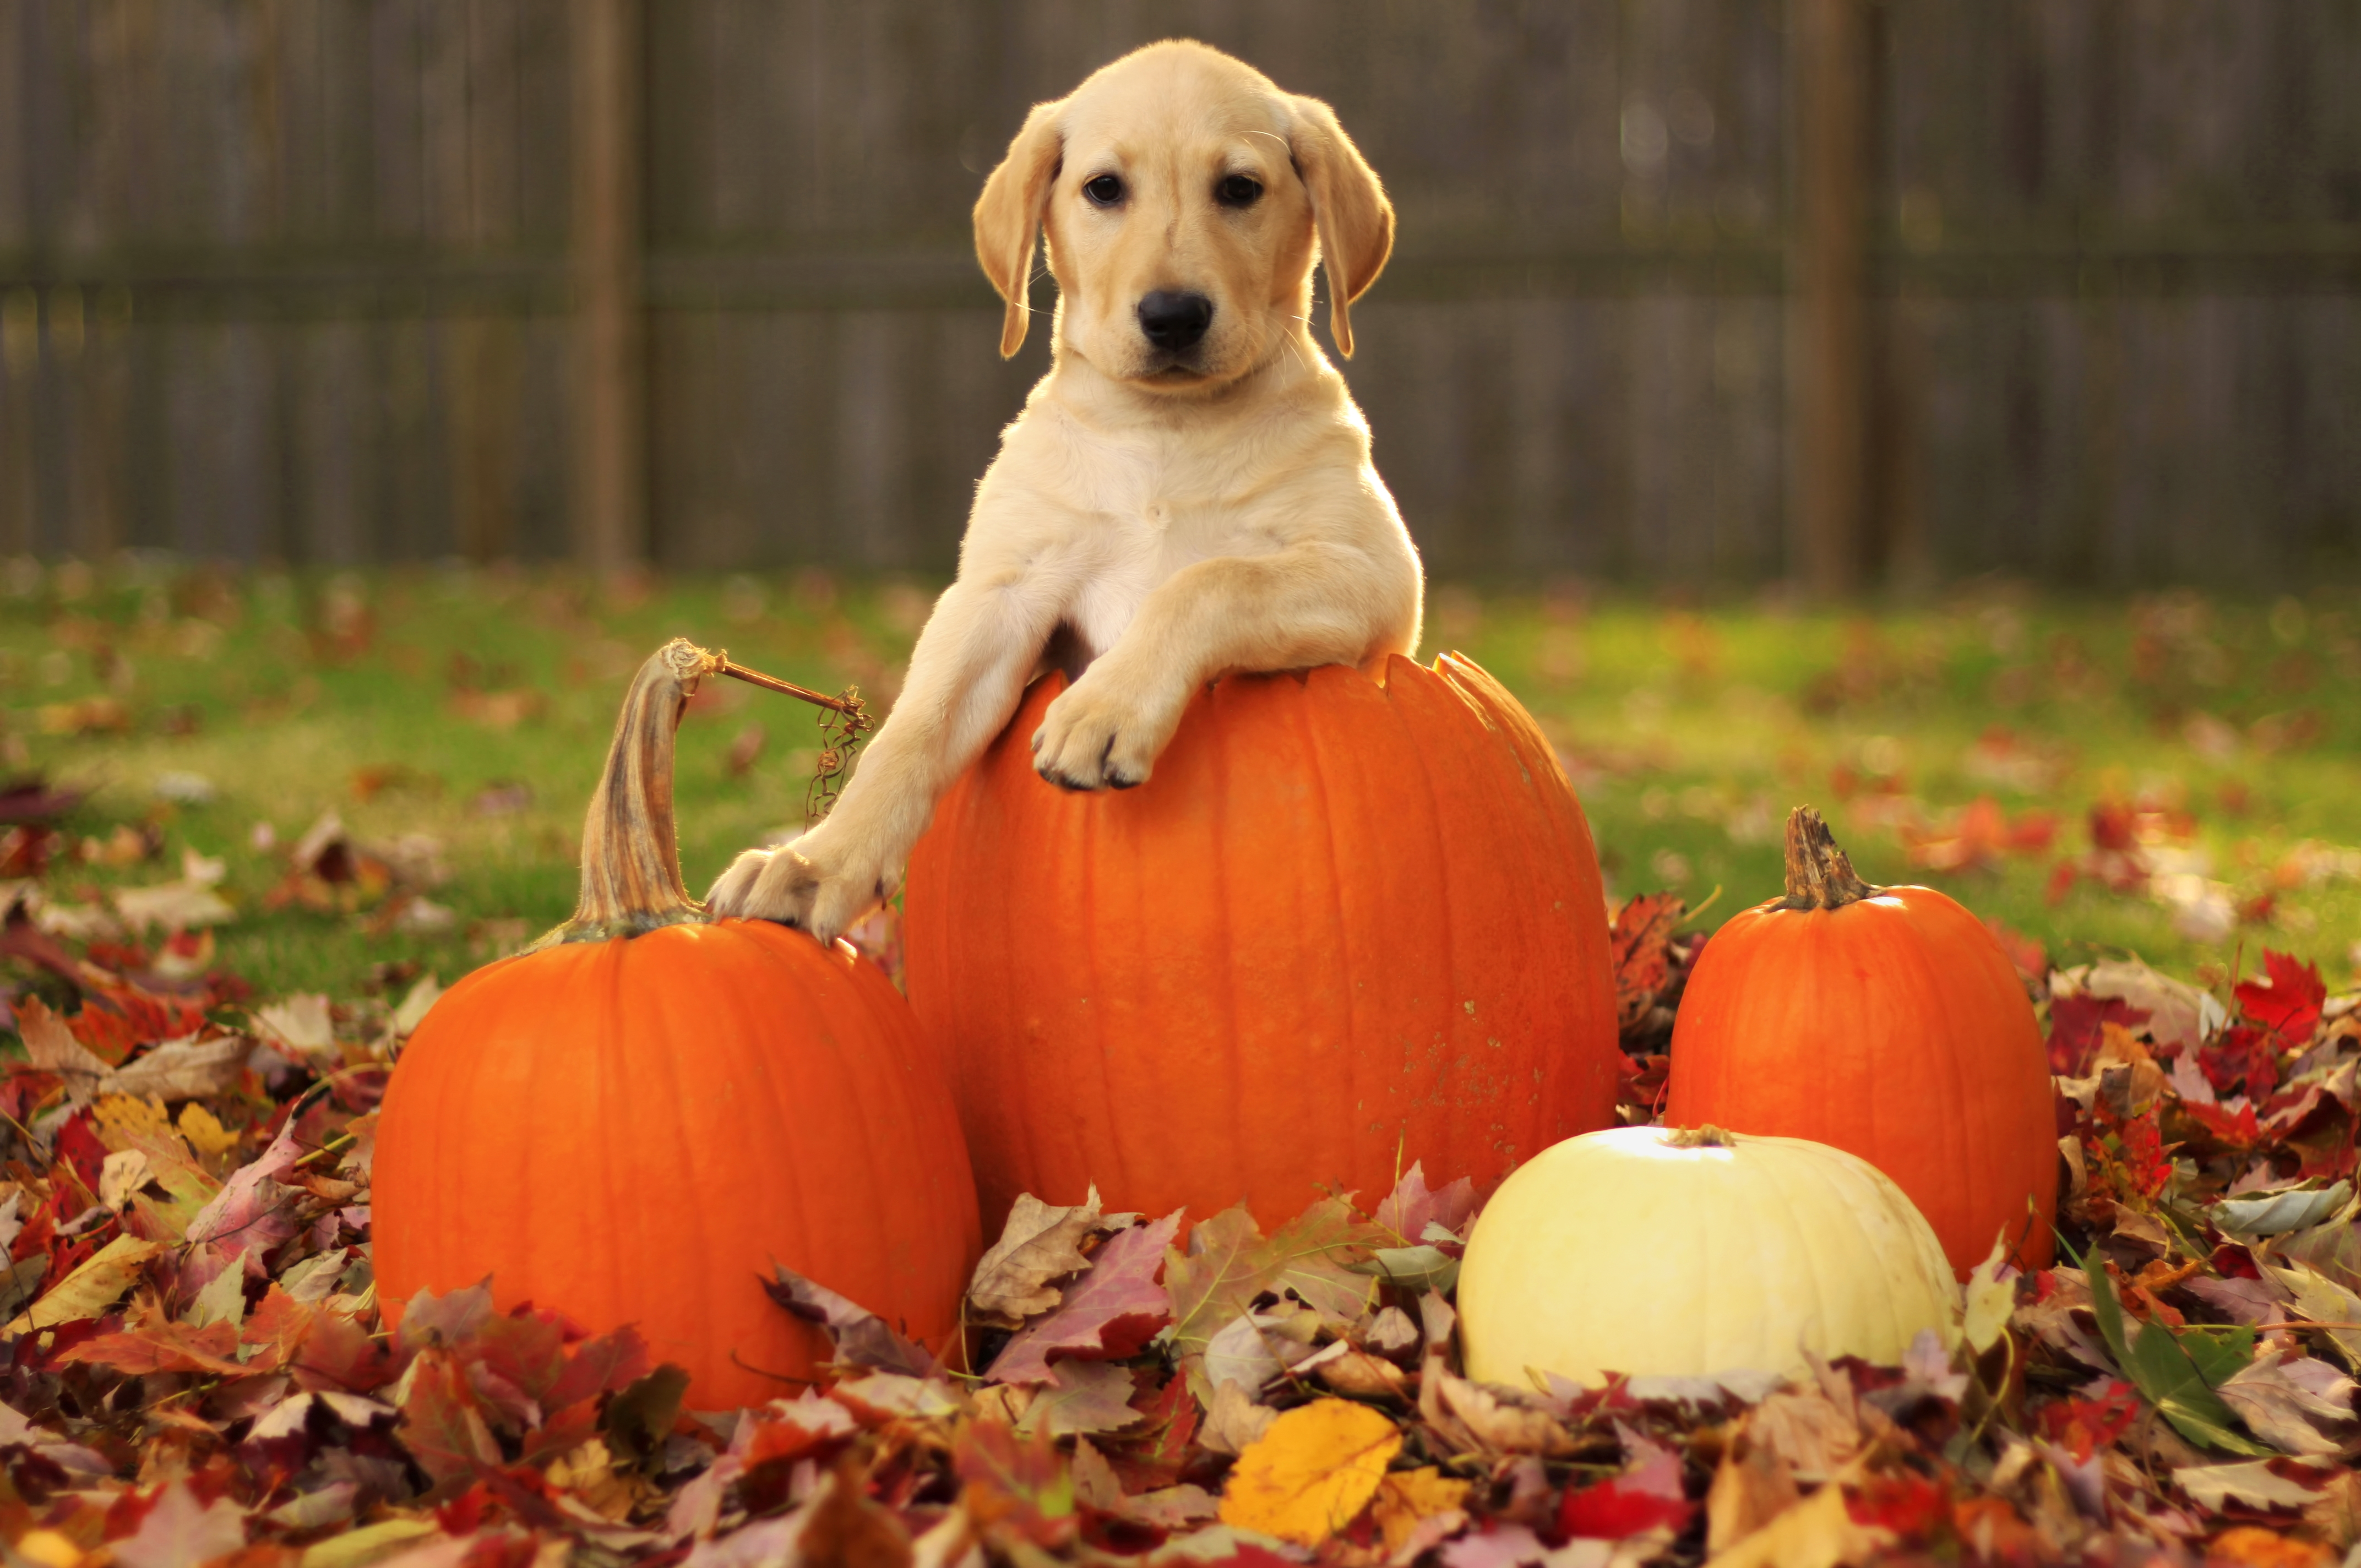 124086 download wallpaper Pumpkin, Animals, Autumn, Leaves, Dog, Puppy, Labrador Retriever screensavers and pictures for free